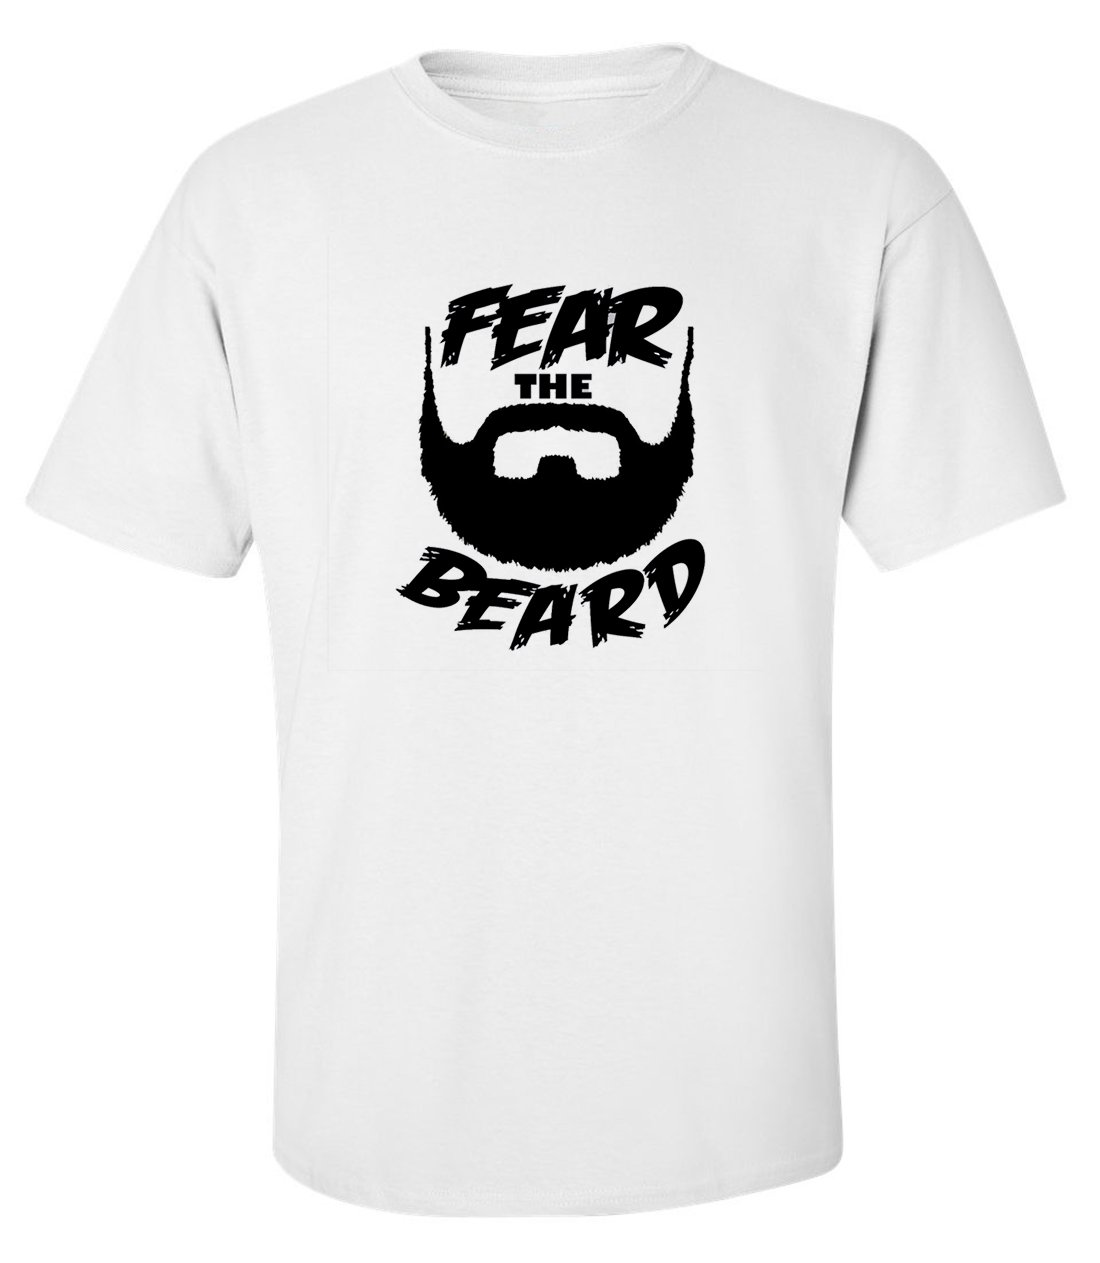 Fear the beard funny slogan men printed cotton white t-shirt size M